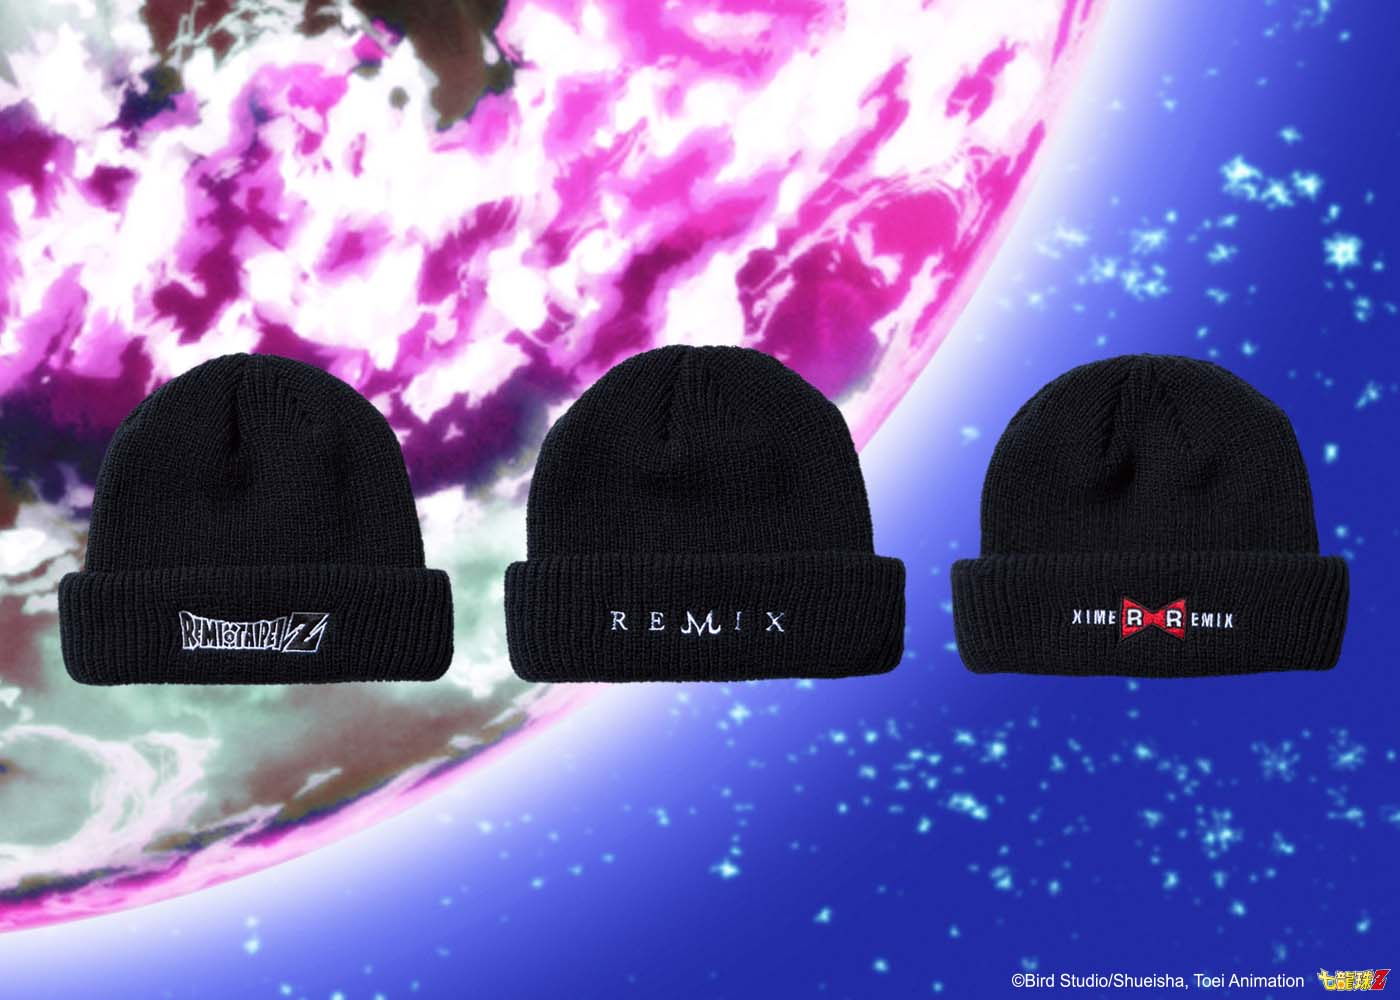 remix-x-dragon-ball-z-capsule-collection5